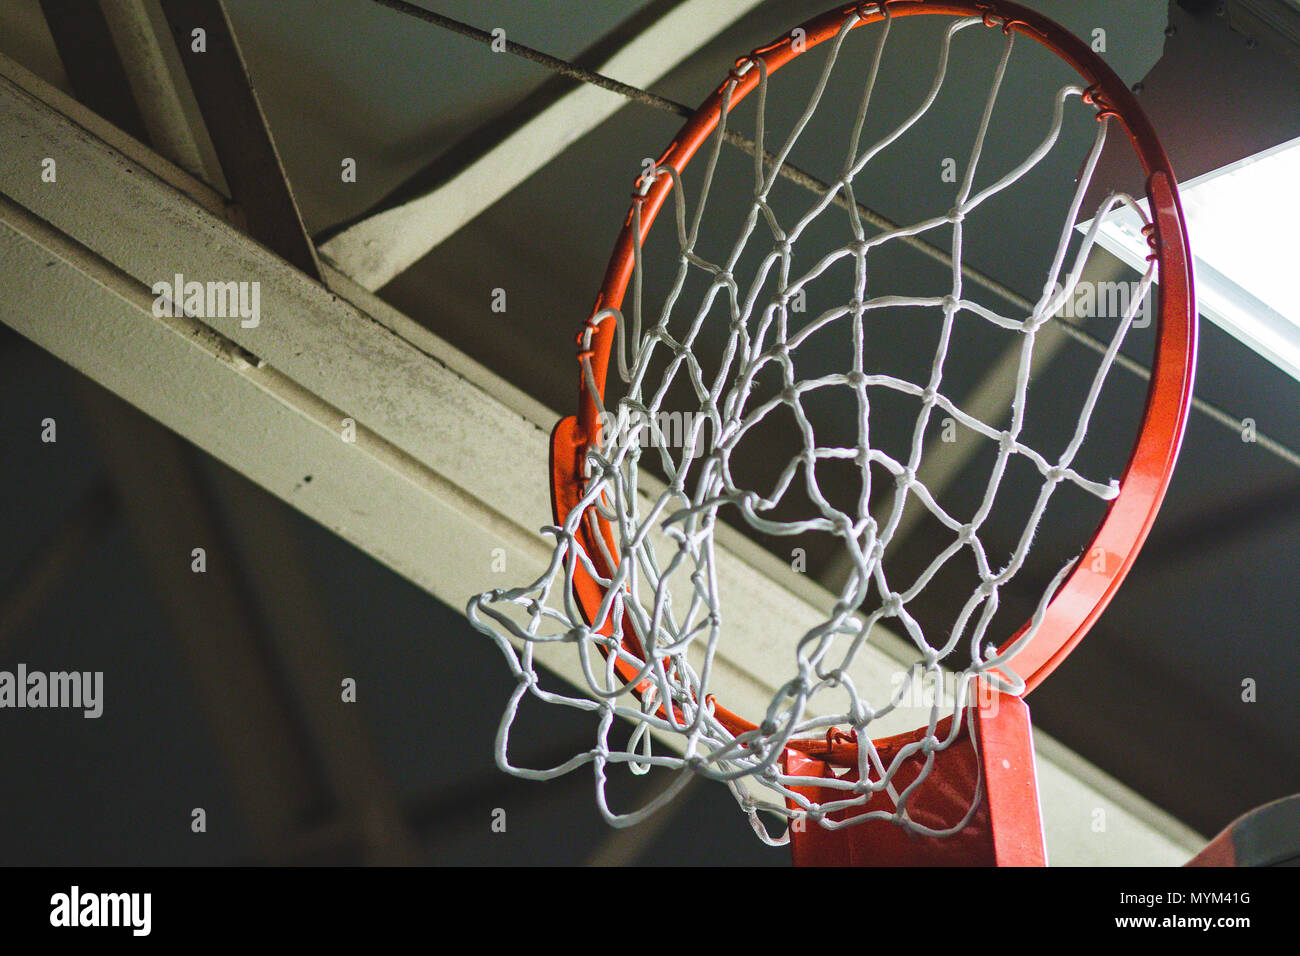 a basketball hoop and net retracted up for storage - Stock Image